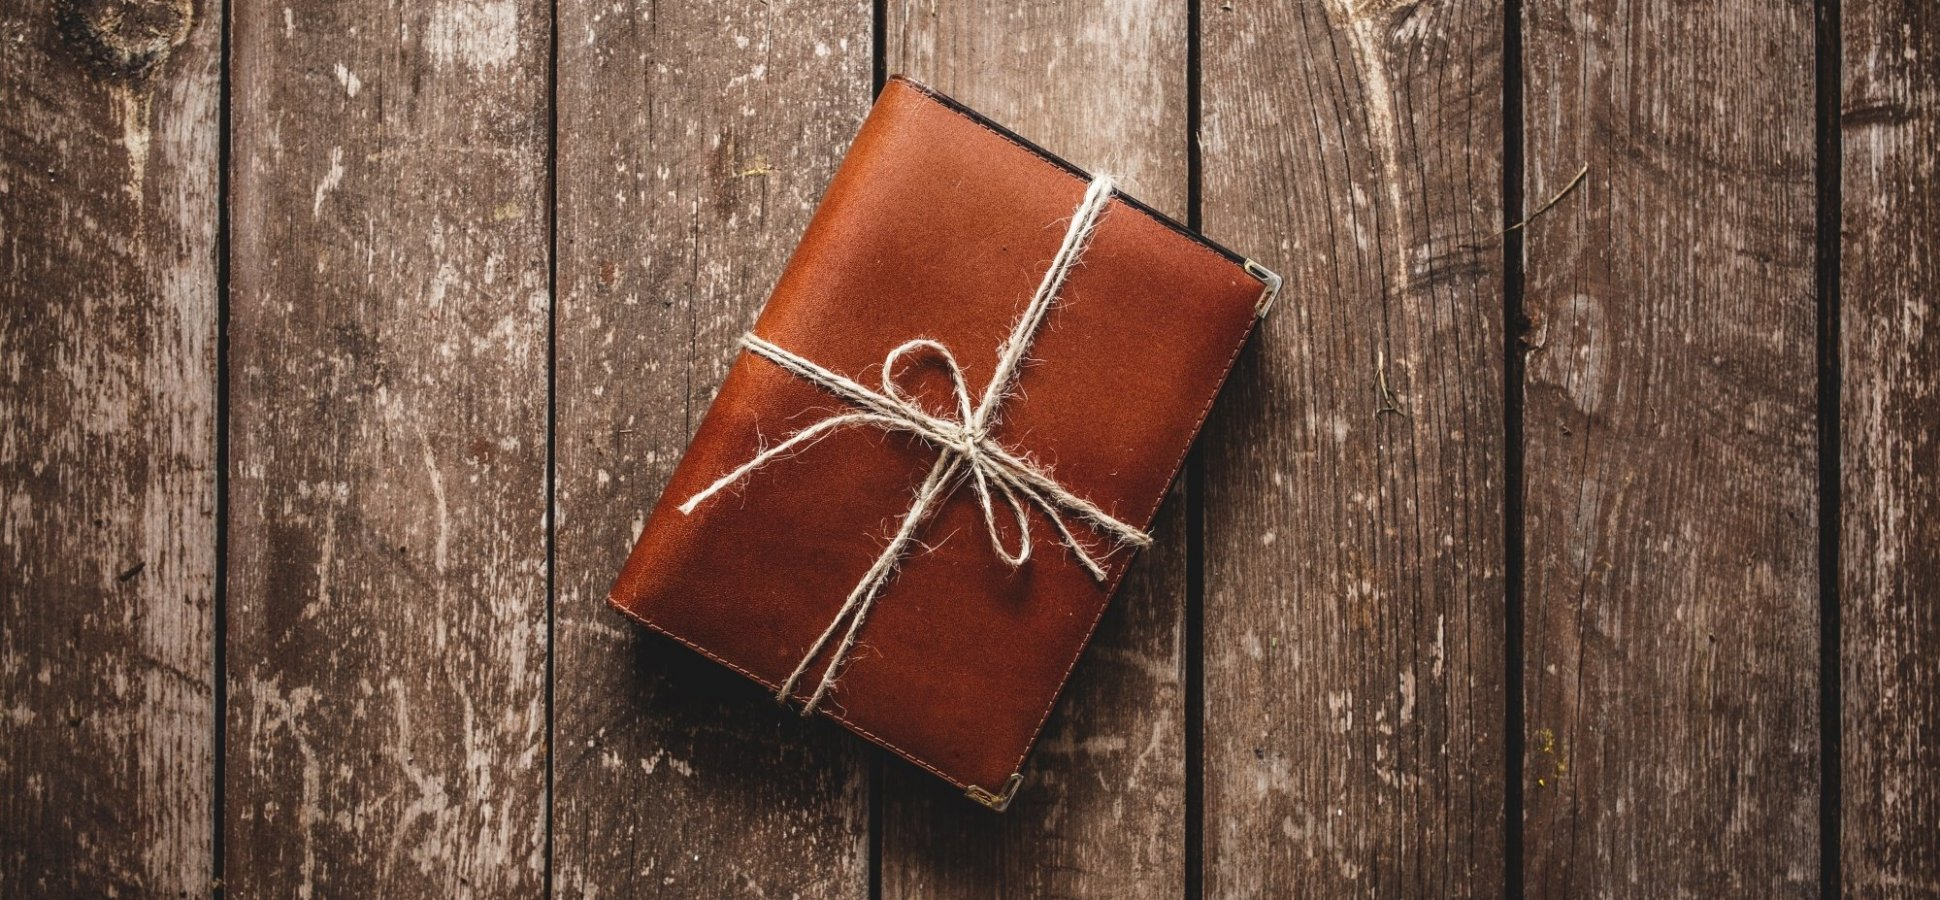 17 of the Best Business Books to Give as Gifts This Holiday Season